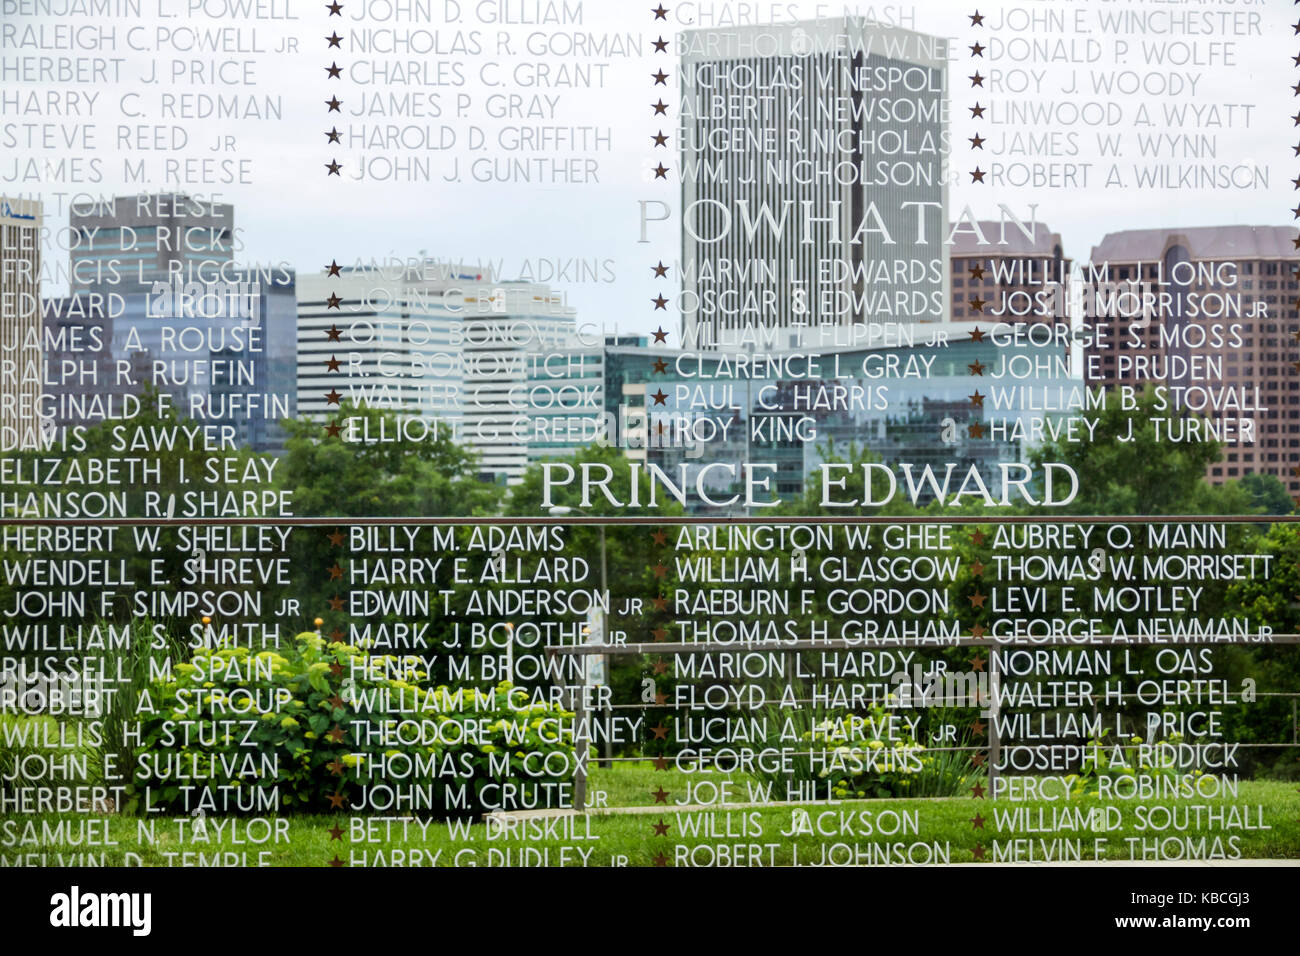 Richmond Virginia Virginia War Memorial Shrine of Memory monument fallen soldiers names glass engraving city skyline - Stock Image